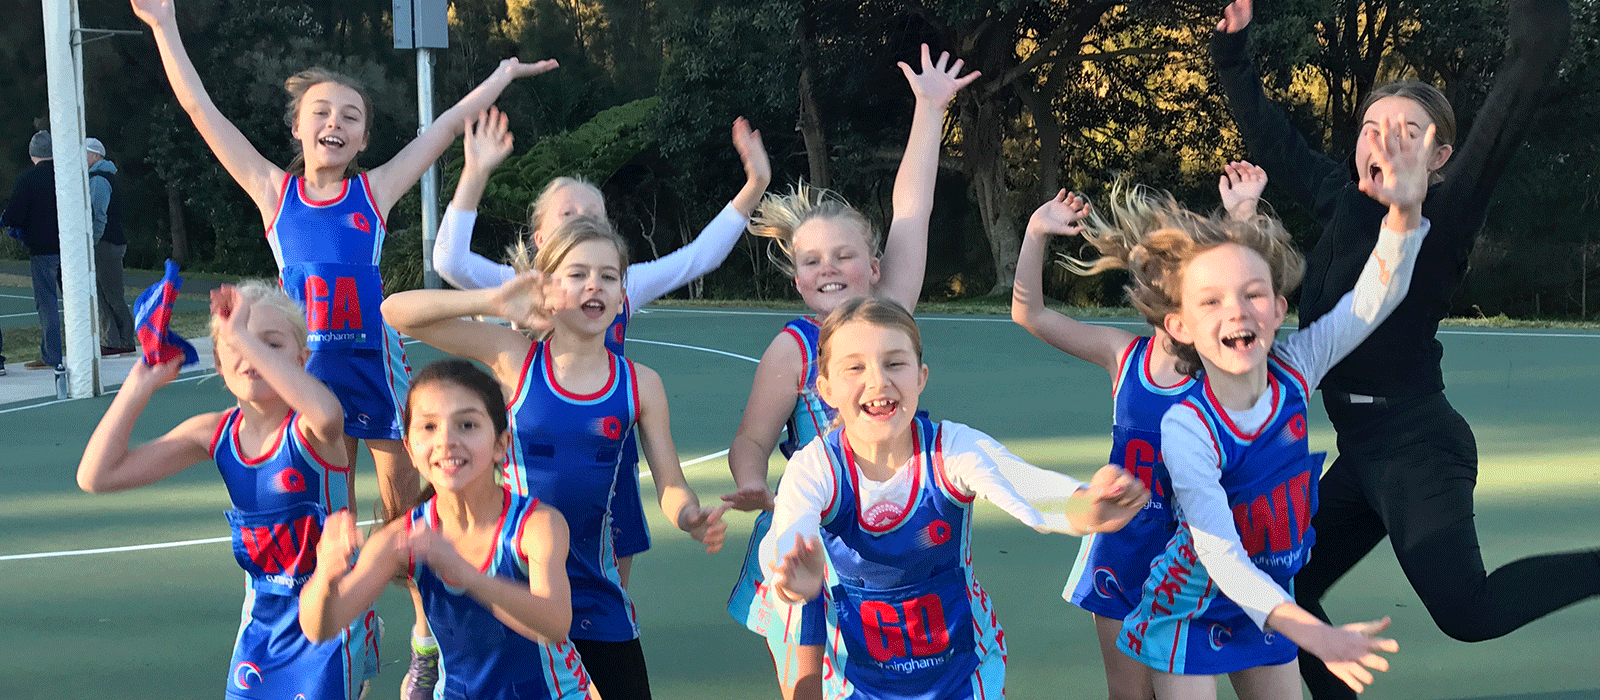 Queenscliff Netball Club 2019 – U12 Teams